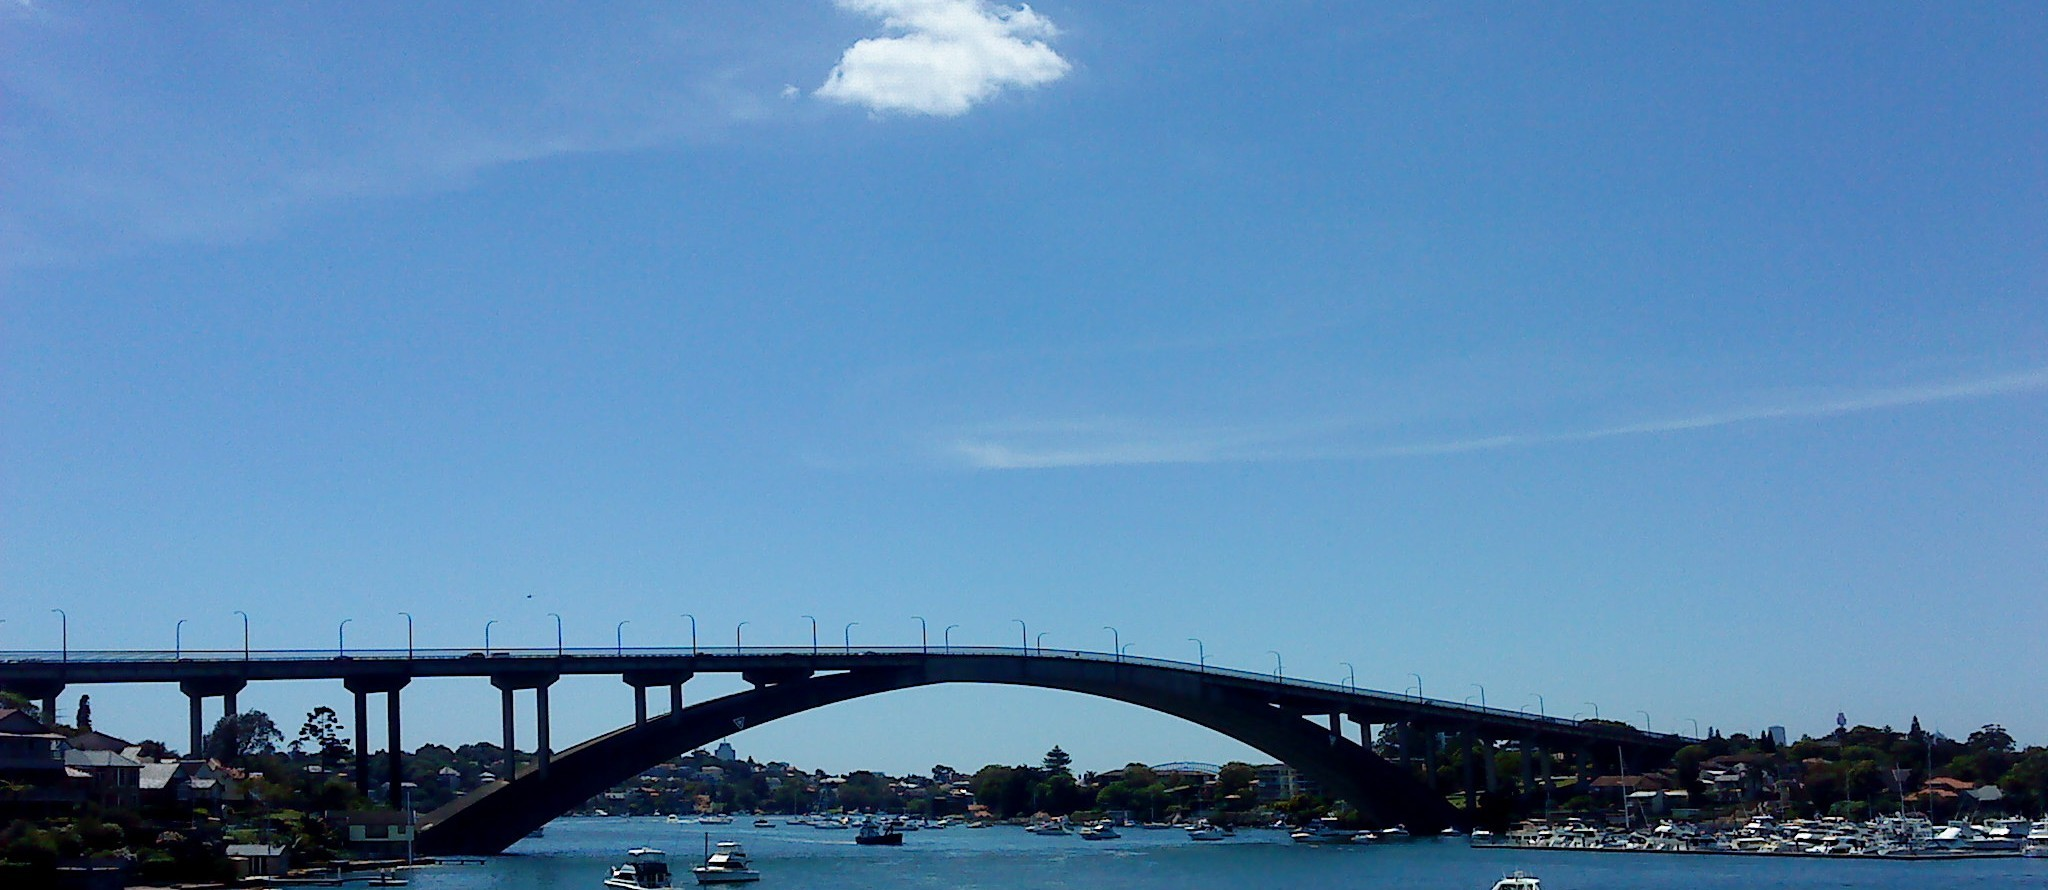 """Gladesville Bridge"" by phonetography101@flickr, used under CC BY / Cropped from original"